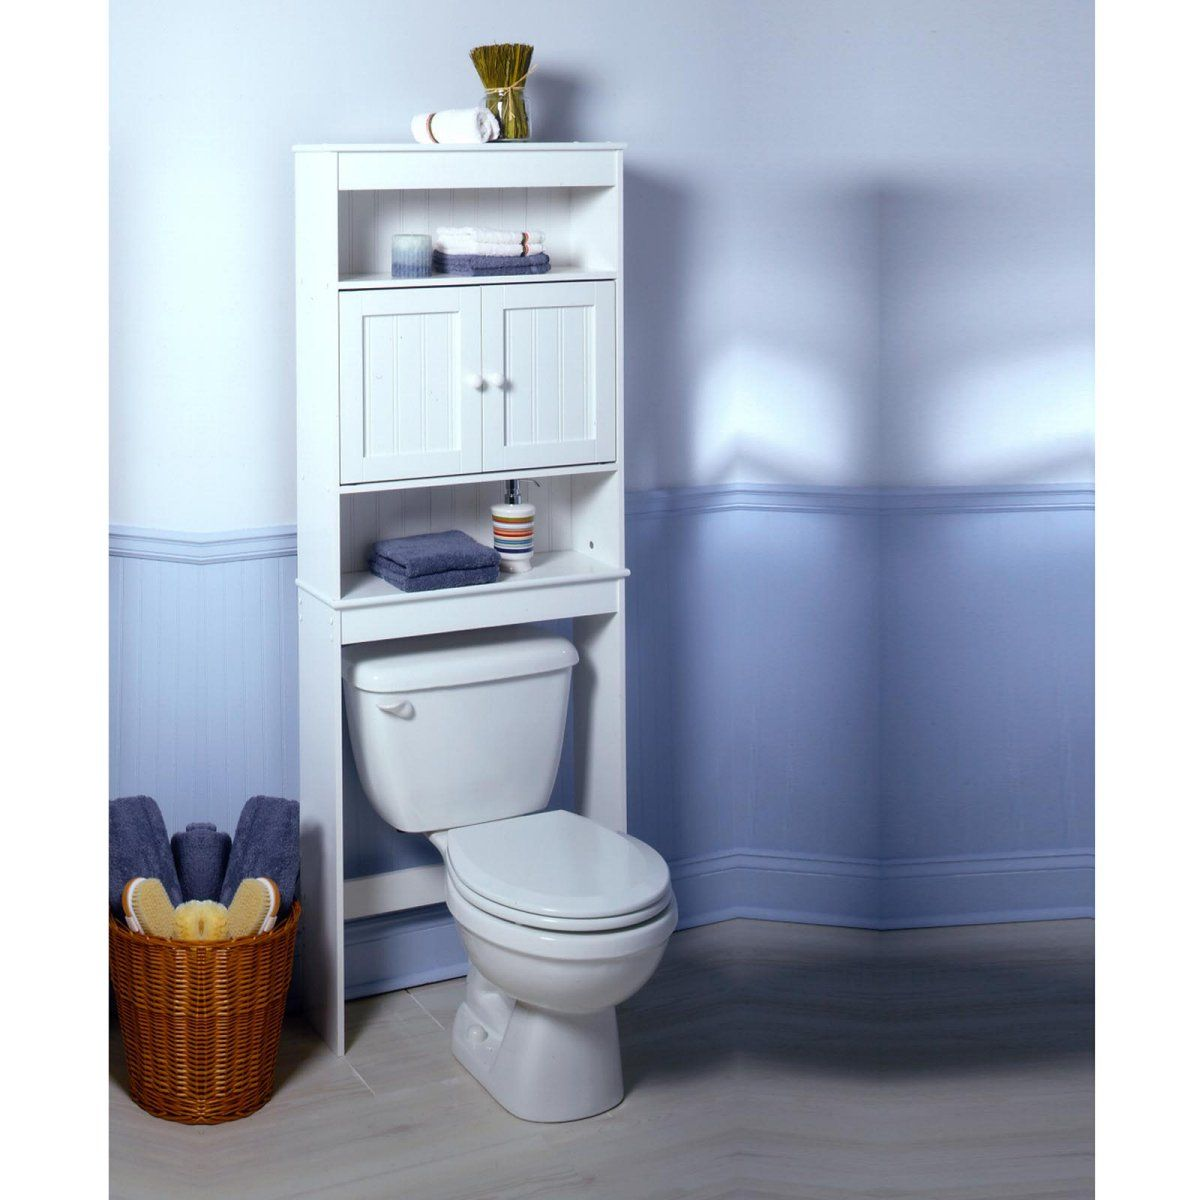 nassau louvered space saver is the solution for a shortage of storage space in your bathroom designed to fit over the toilet tank this cabinet takes